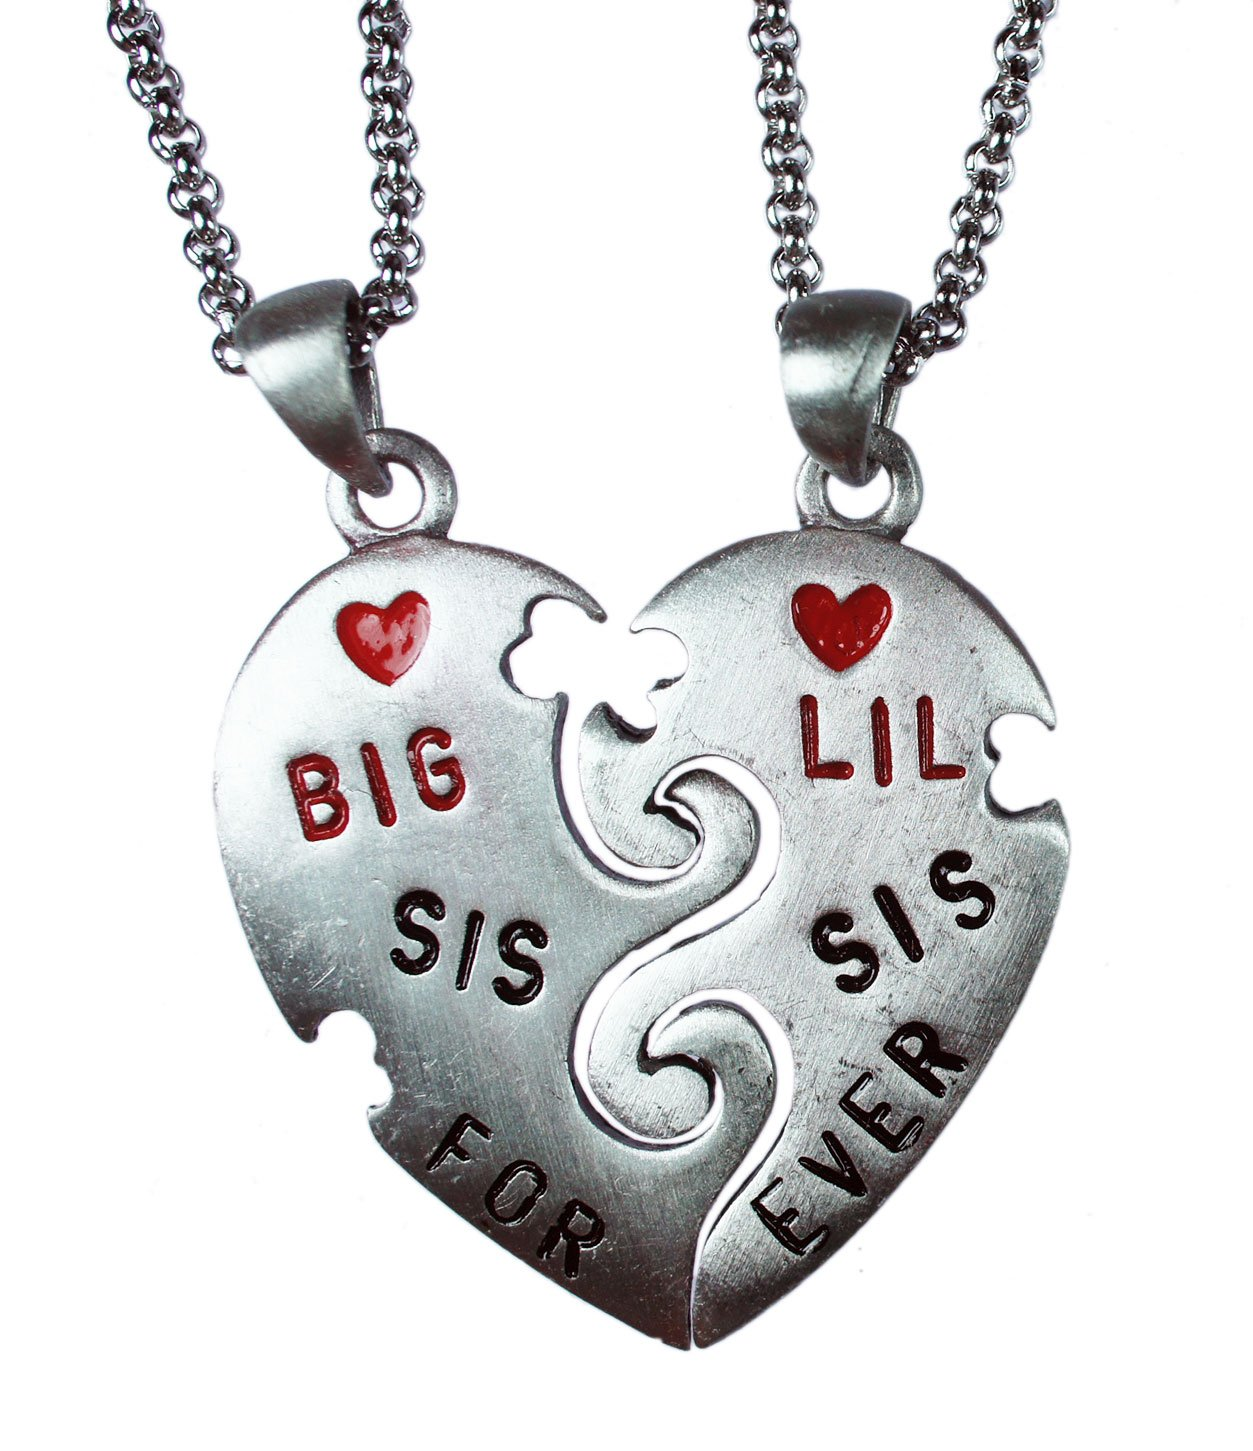 exoticdream BIG SIS LIL SIS Forever Split Pewter Pendant (18'' Stainless Steel)